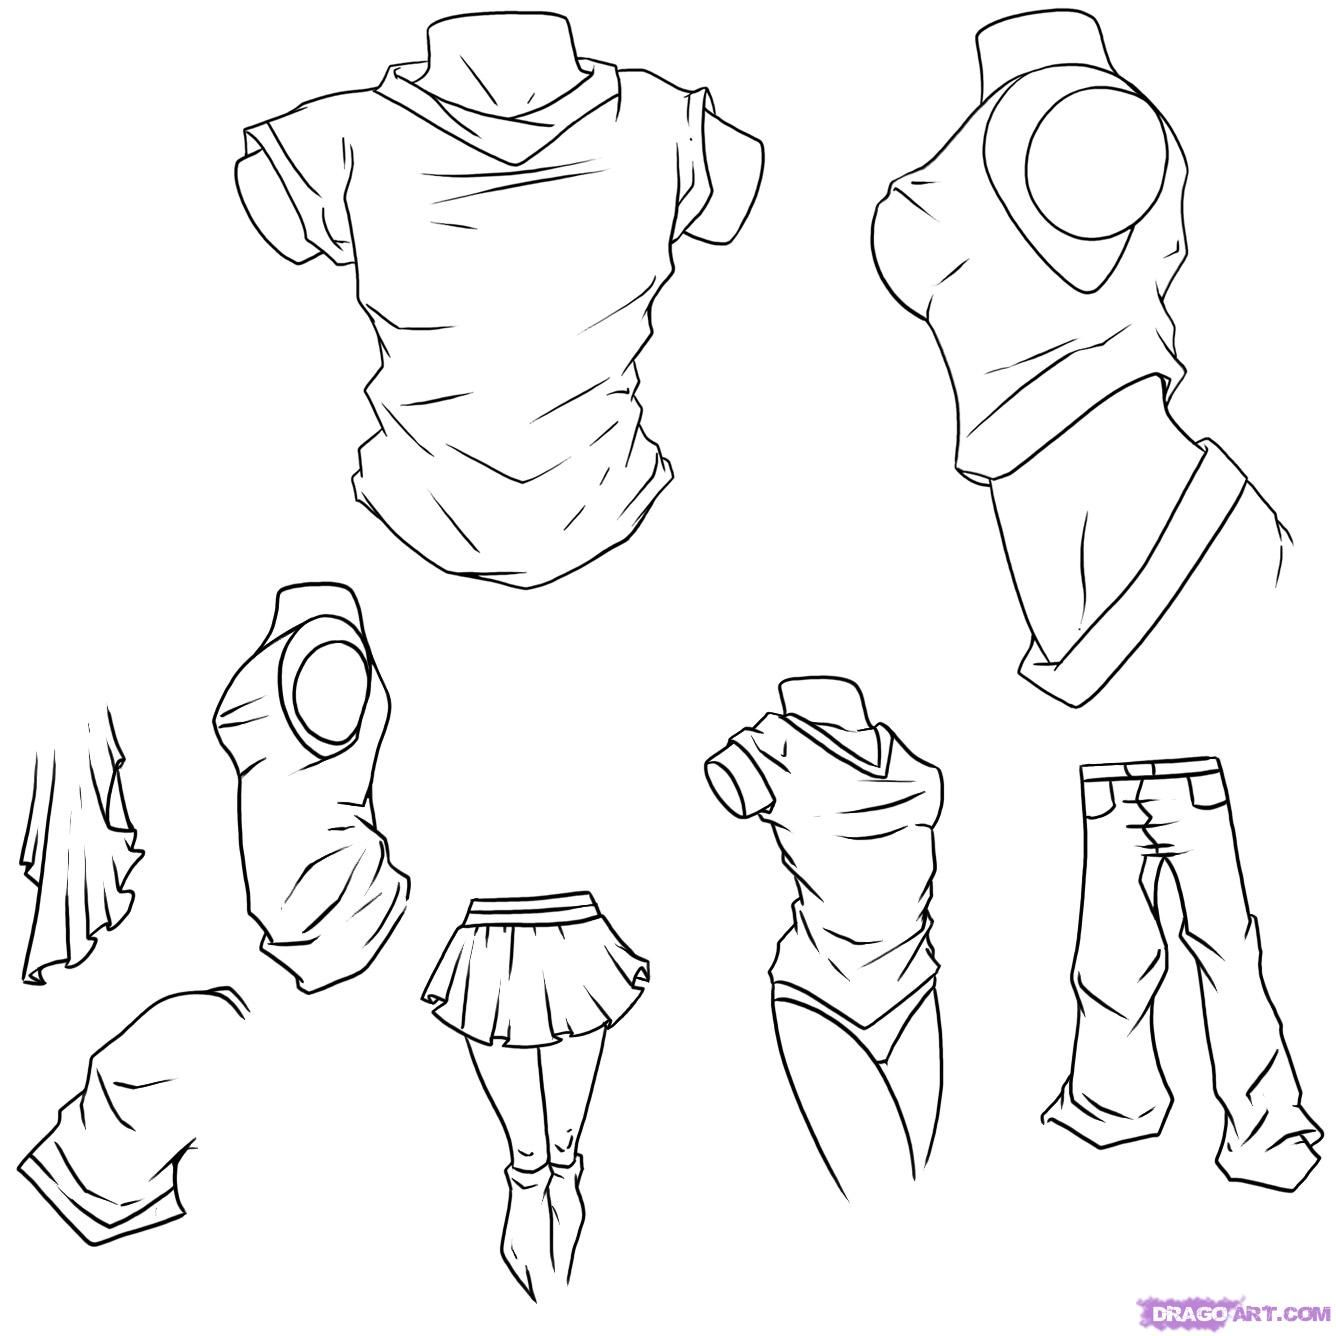 1336x1336 How To Draw Clothes References Clothes, Drawings